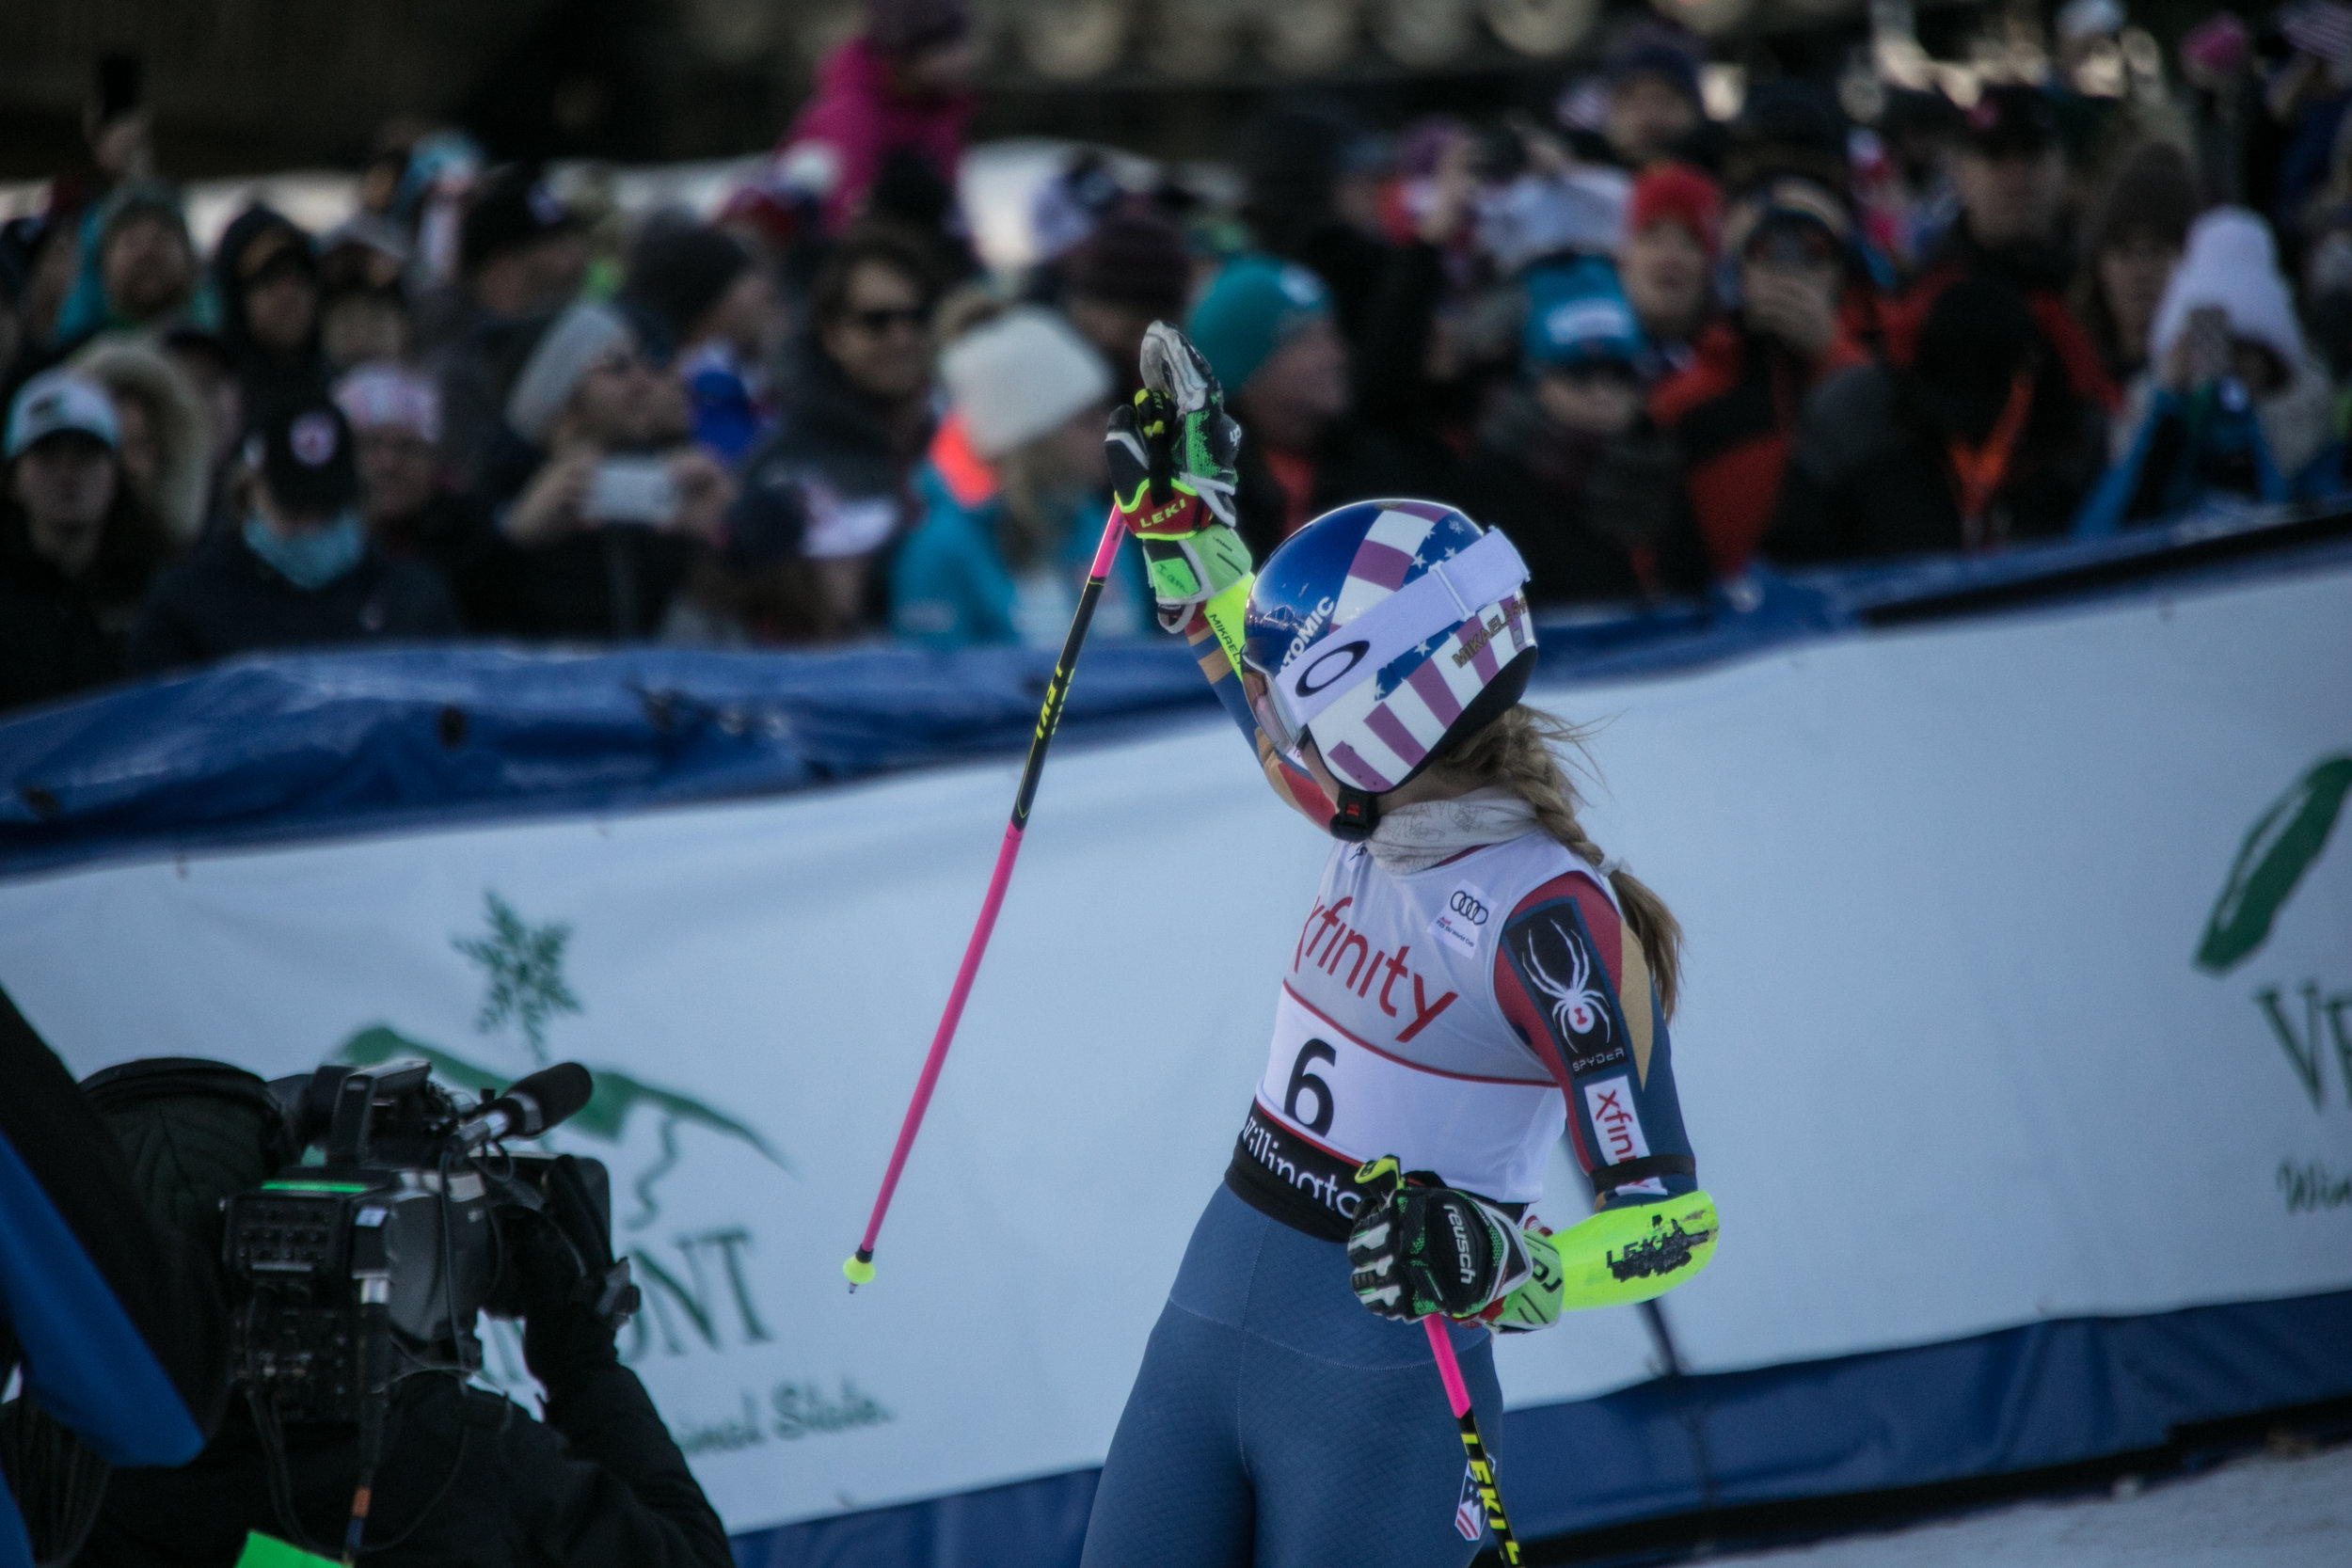 Mikaela Shiffrin waves to the crazed crowd after coming in 2nd on Saturday in the Giant Slalom.